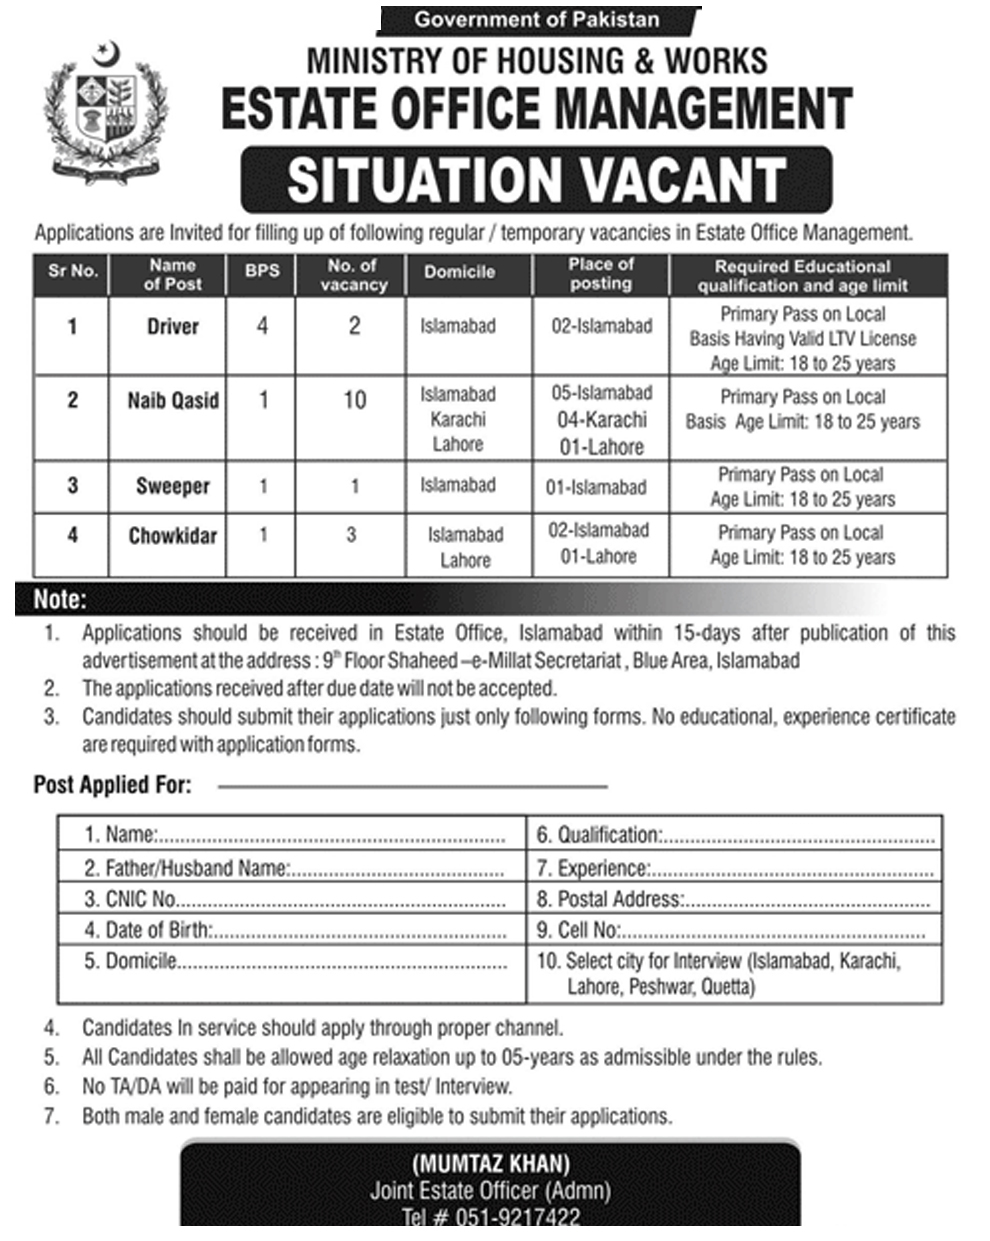 Ministry Of Housing And Works Govt Of Pakistan New Jobs 2019